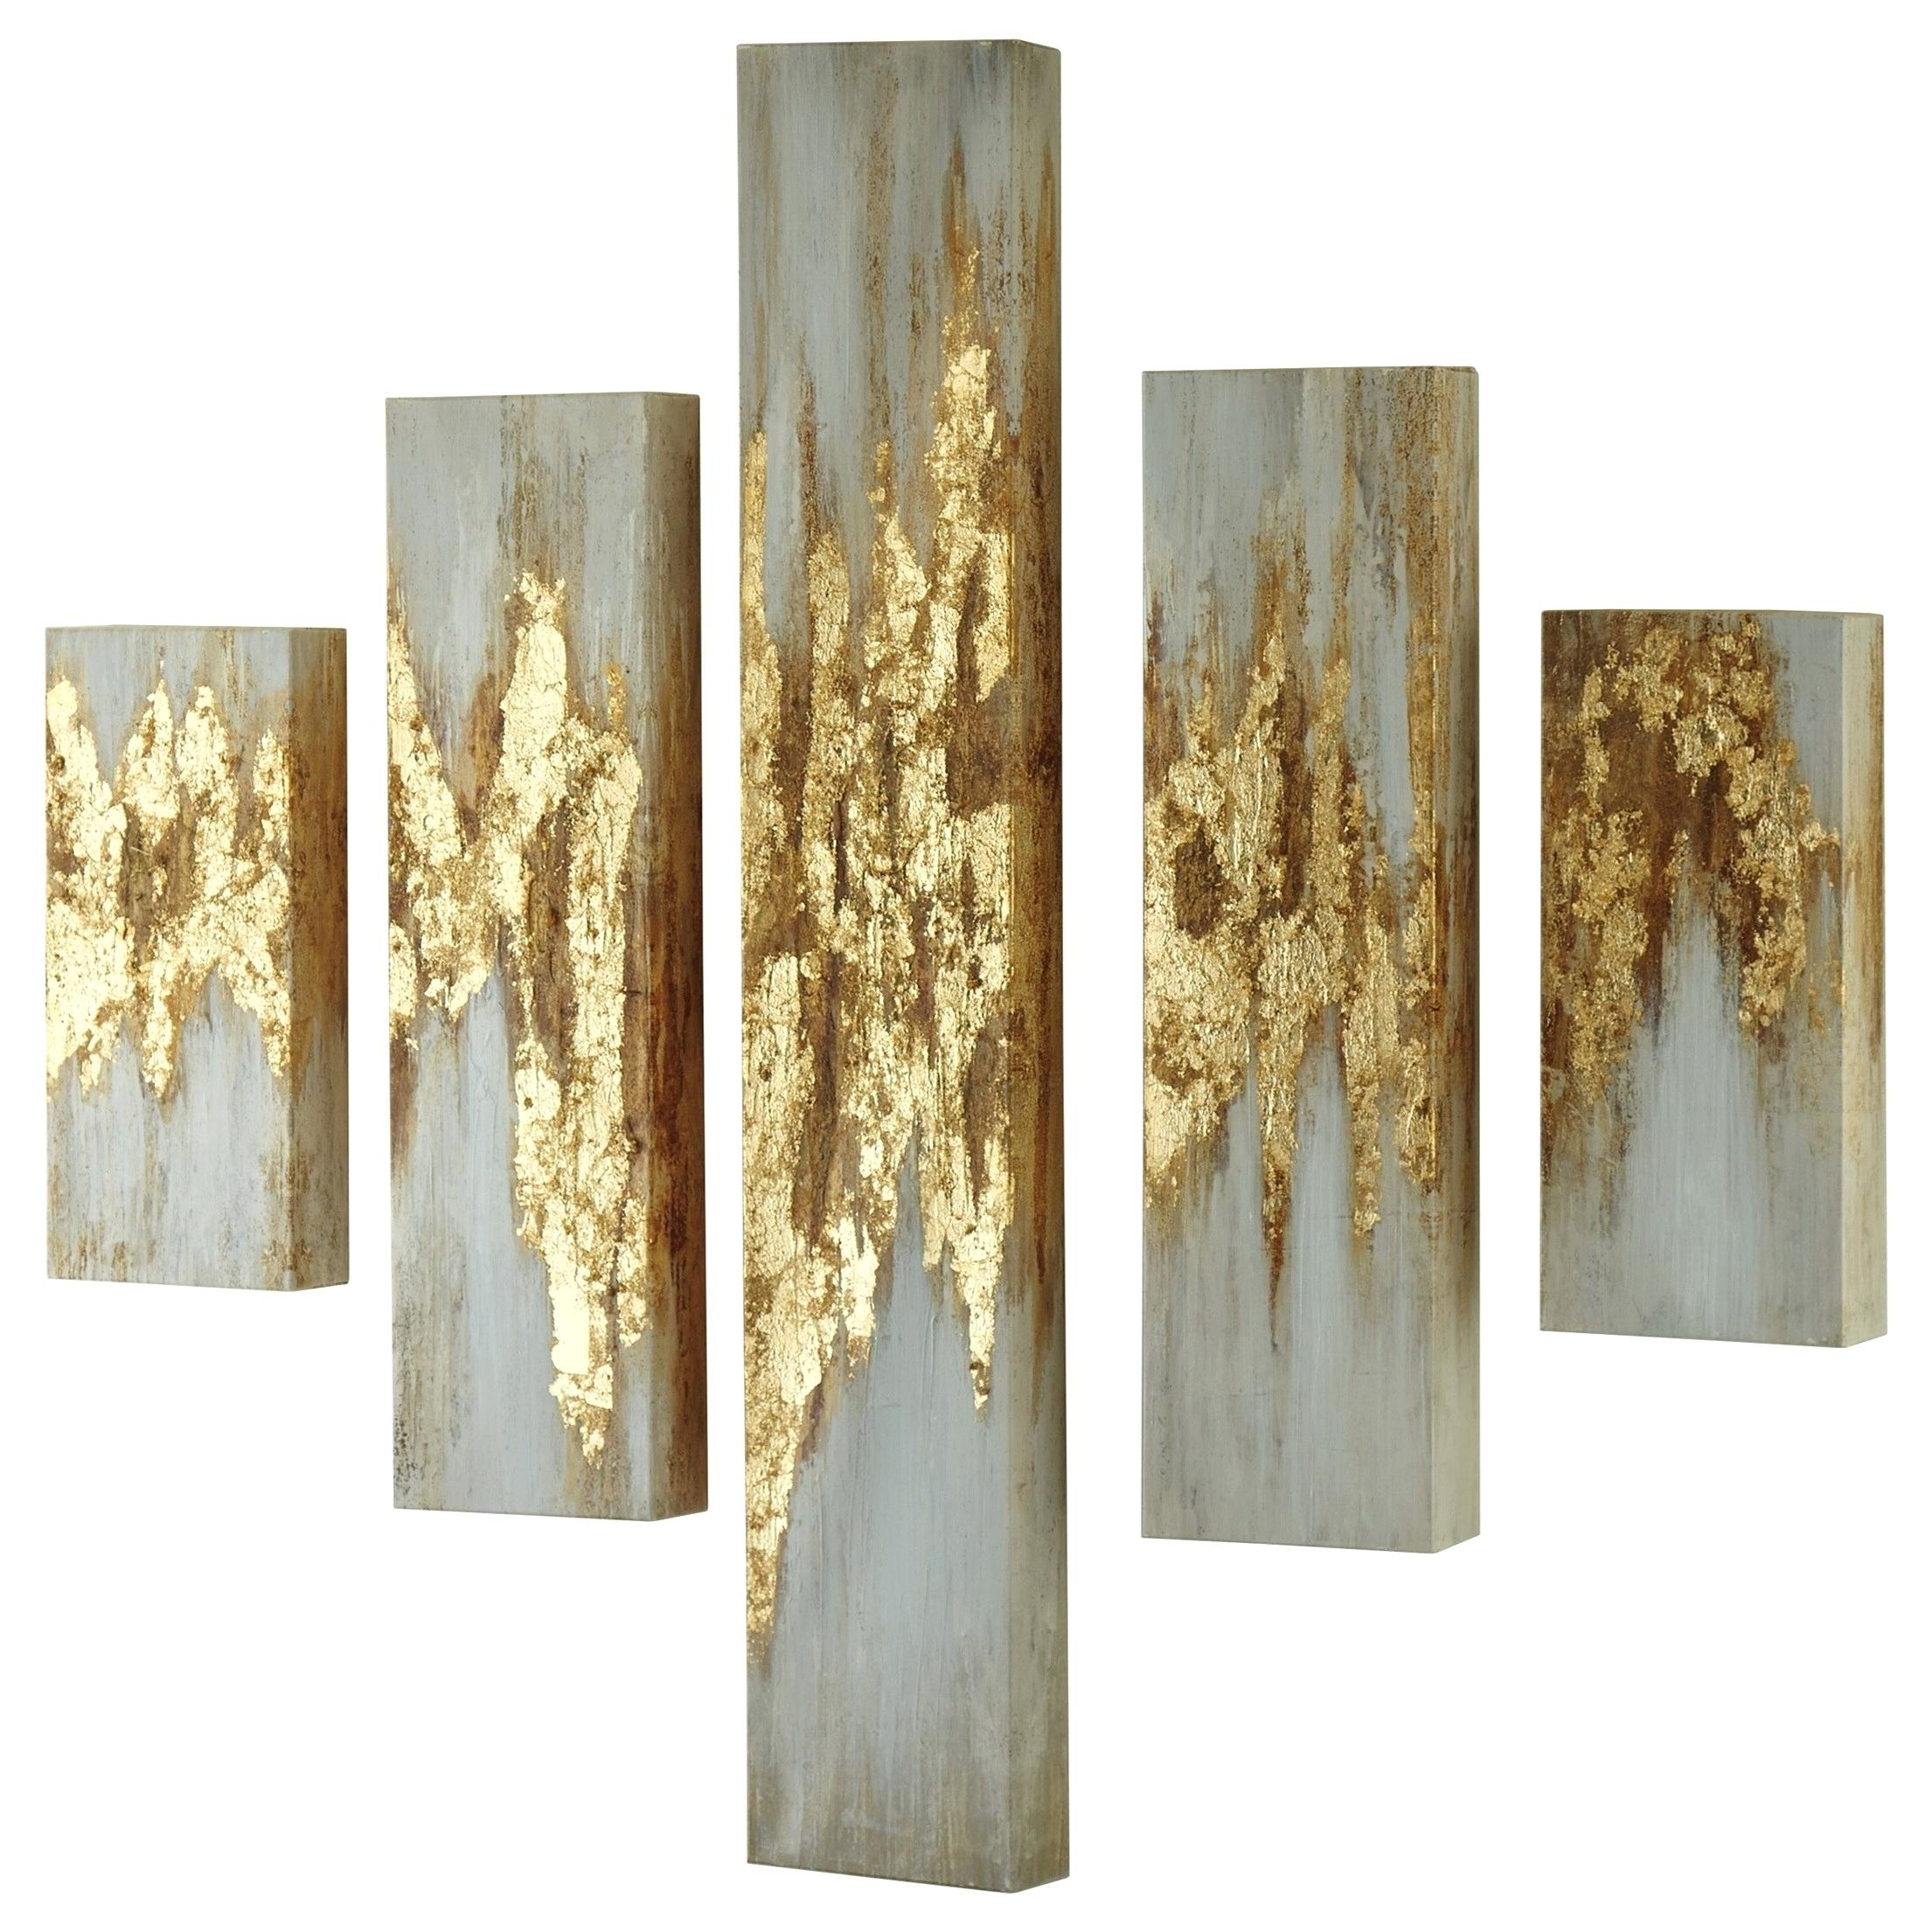 Ashley Wall Signature Designwall Art Gold Finish White Wall Art Pertaining To Latest Ashley Furniture Wall Art (View 9 of 15)